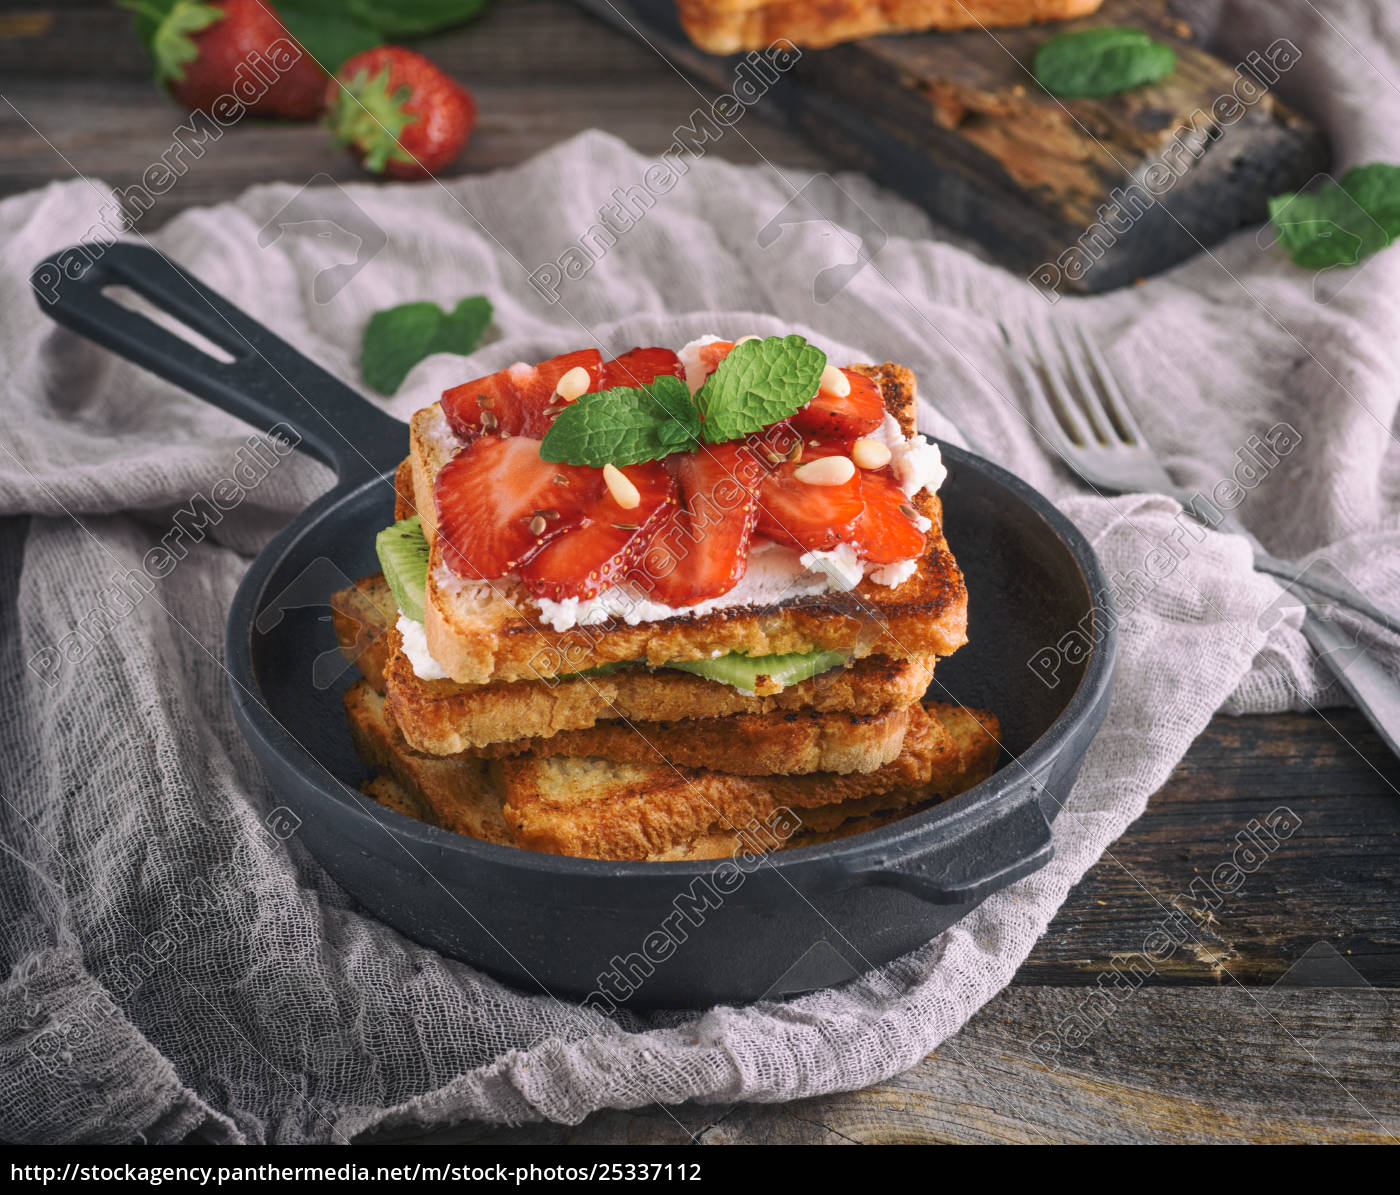 pile, of, french, toast - 25337112